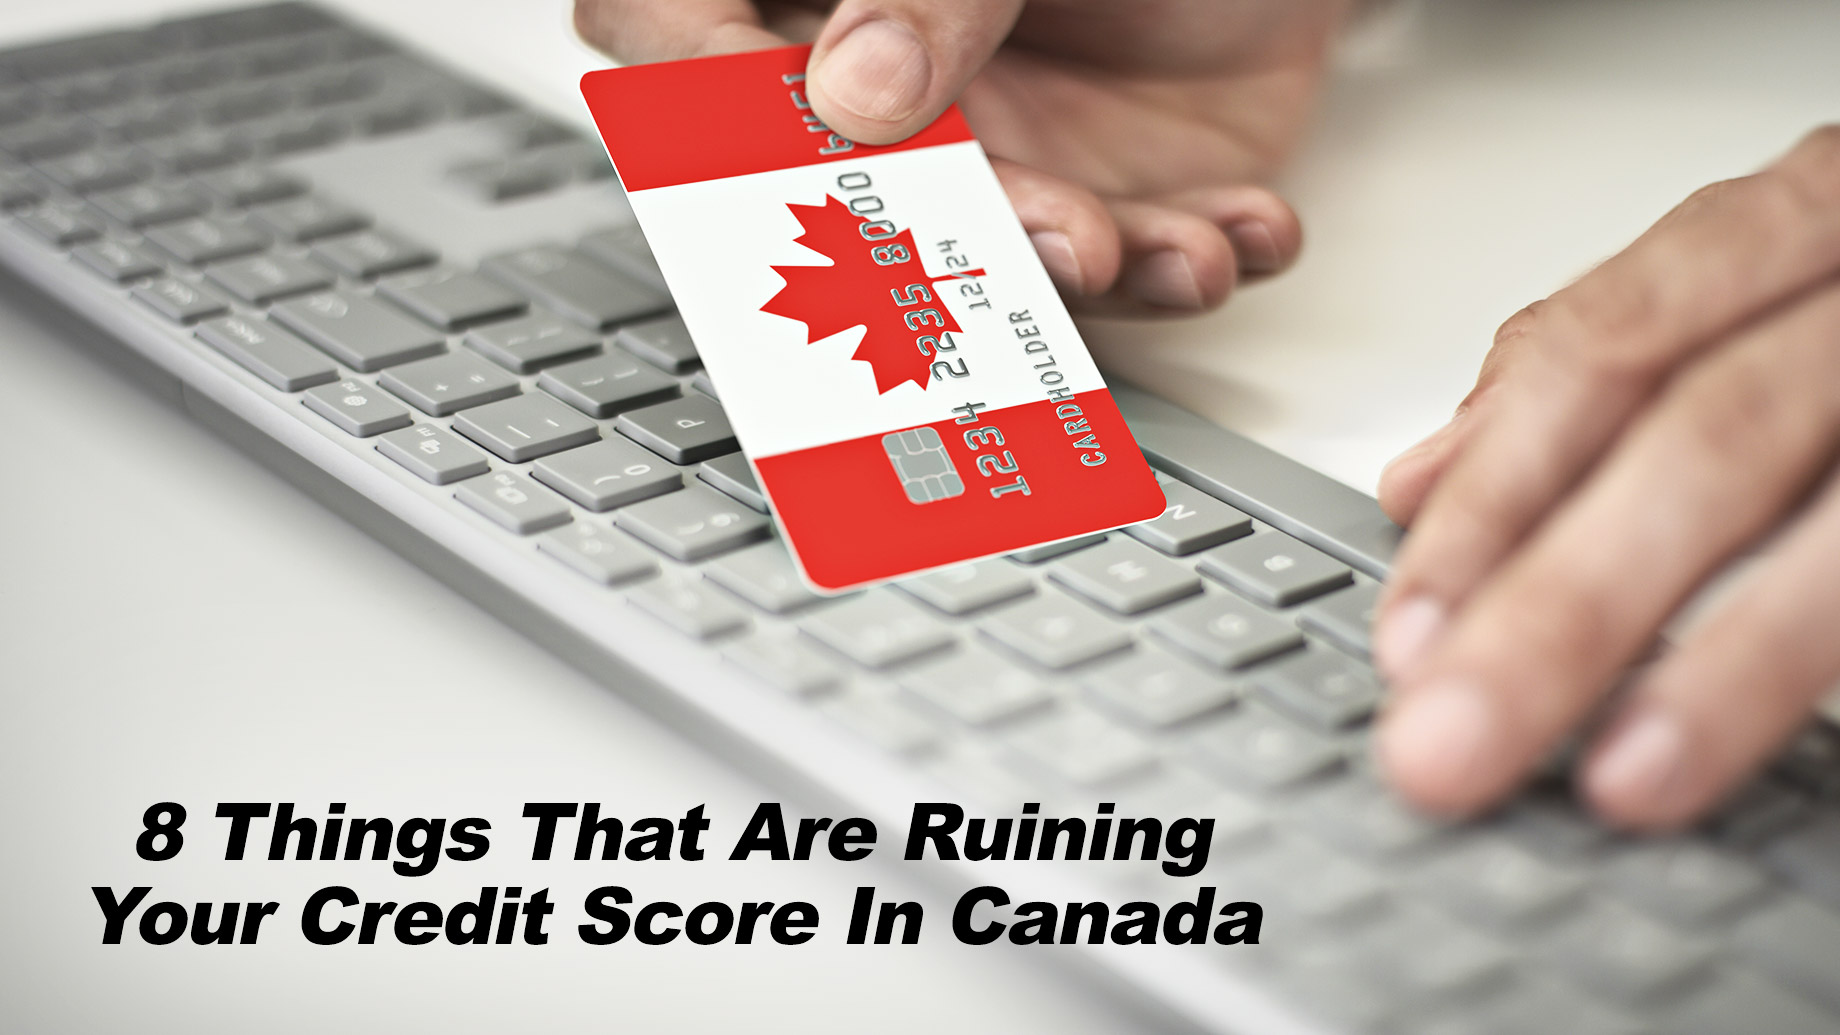 8 Things That Are Ruining Your Credit Score In Canada